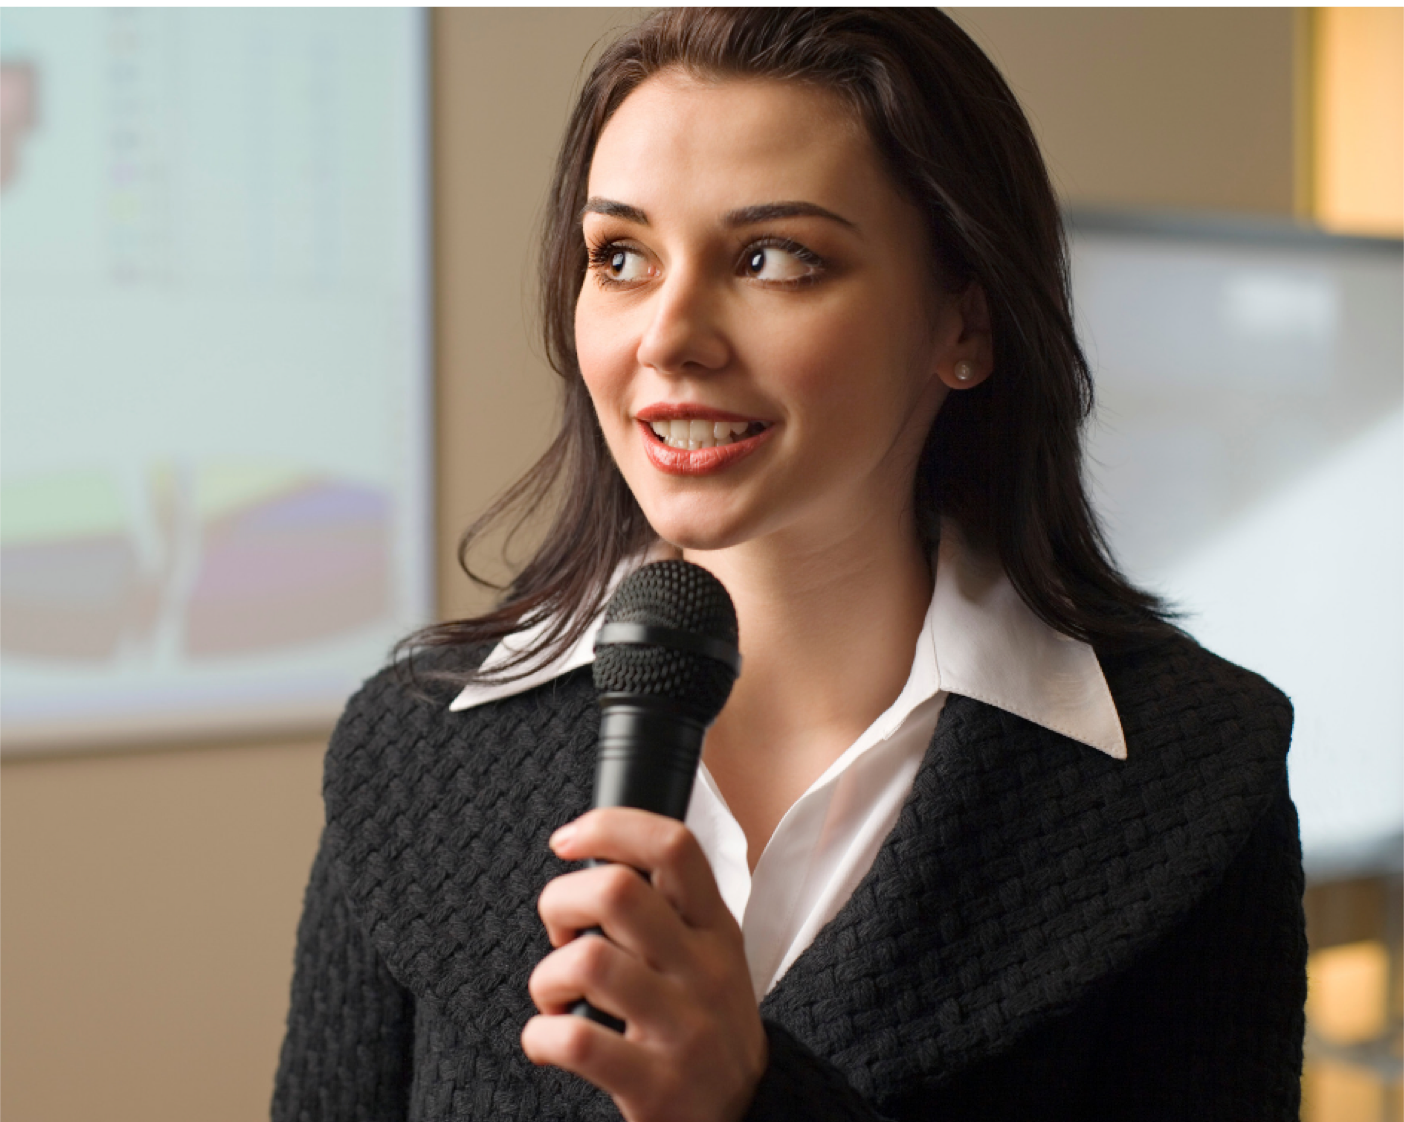 Woman timidly speaking into microphone